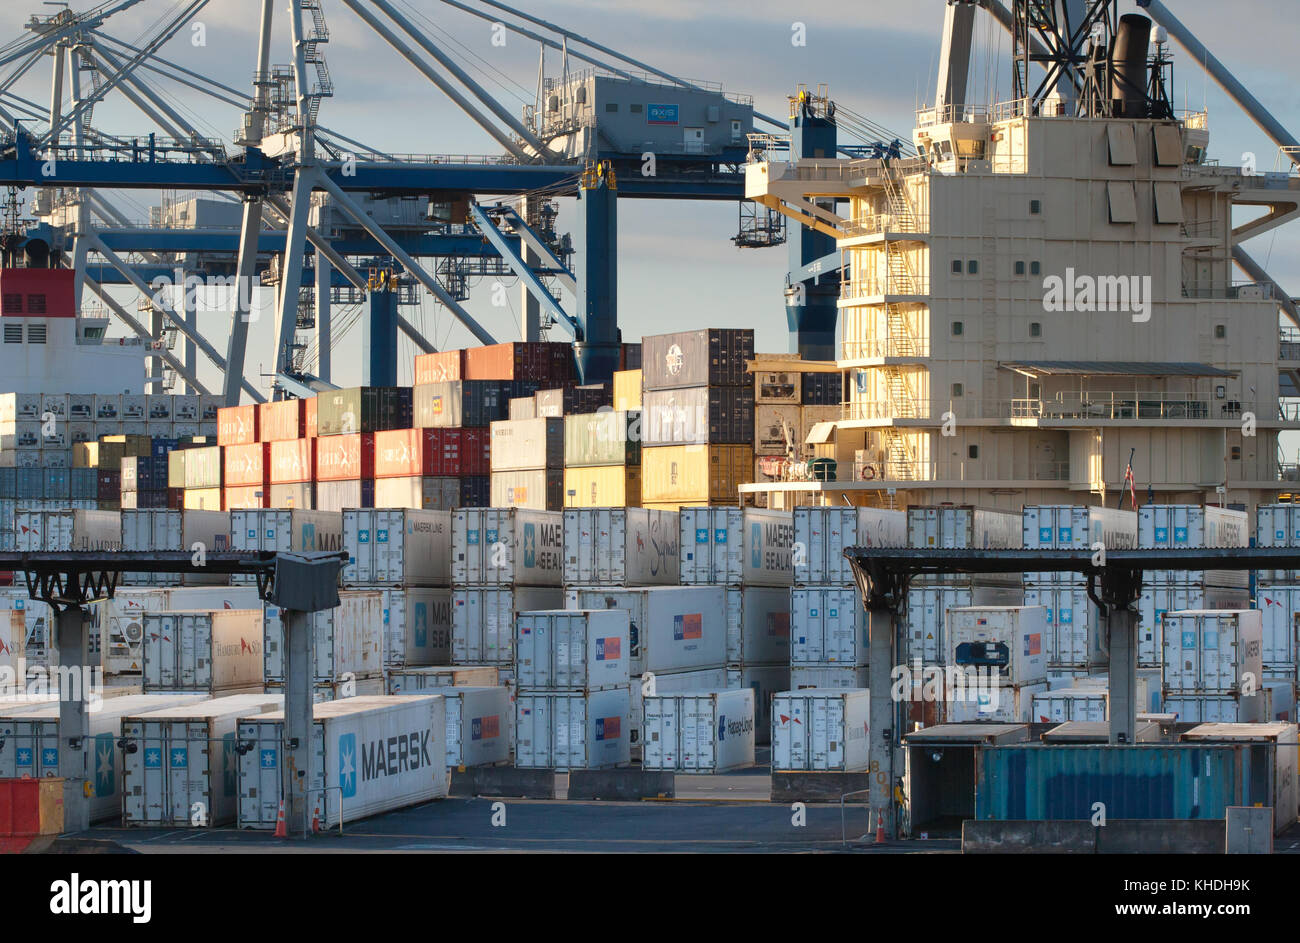 AUCKLAND, NEW ZEALAND - 17th APRIL 2012: Wheeled cranes and stack of containers at port of Auckland. - Stock Image